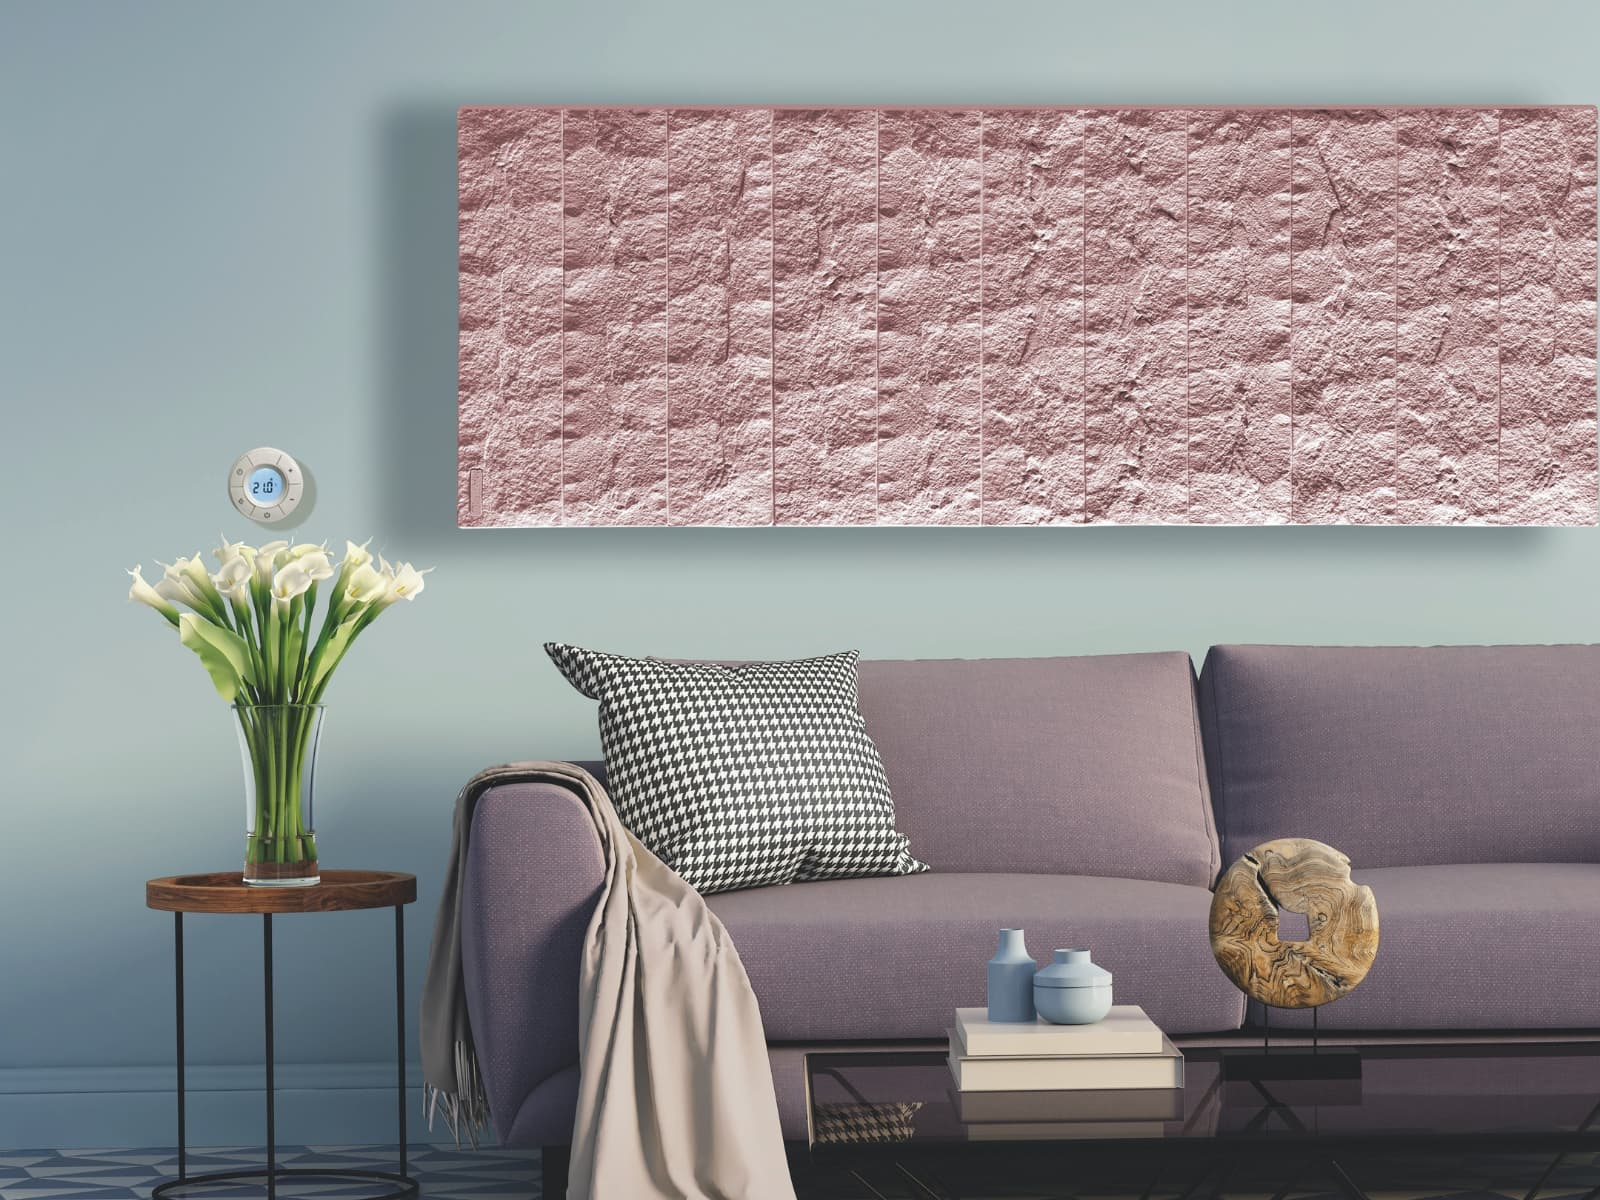 Pietra electric radiators provides comfy heat in the lounge